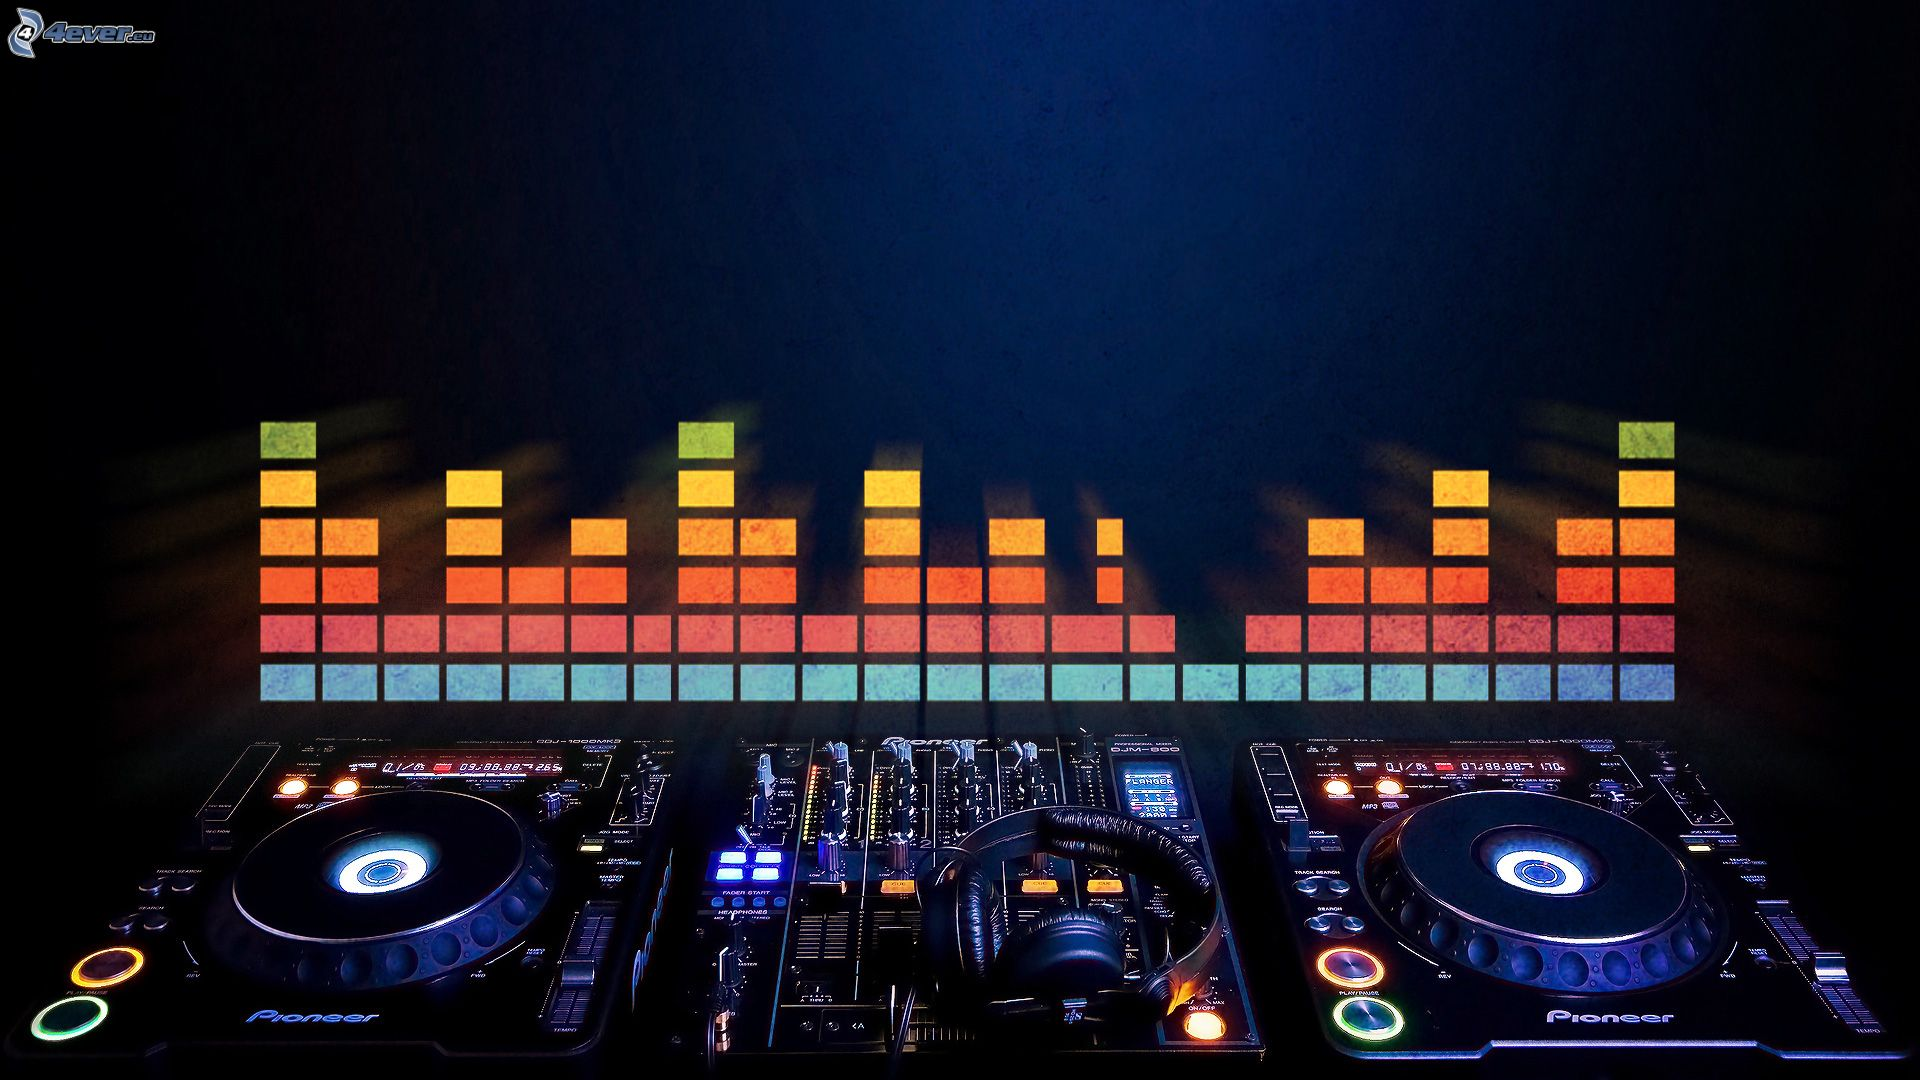 Dj Console Wallpapers1920